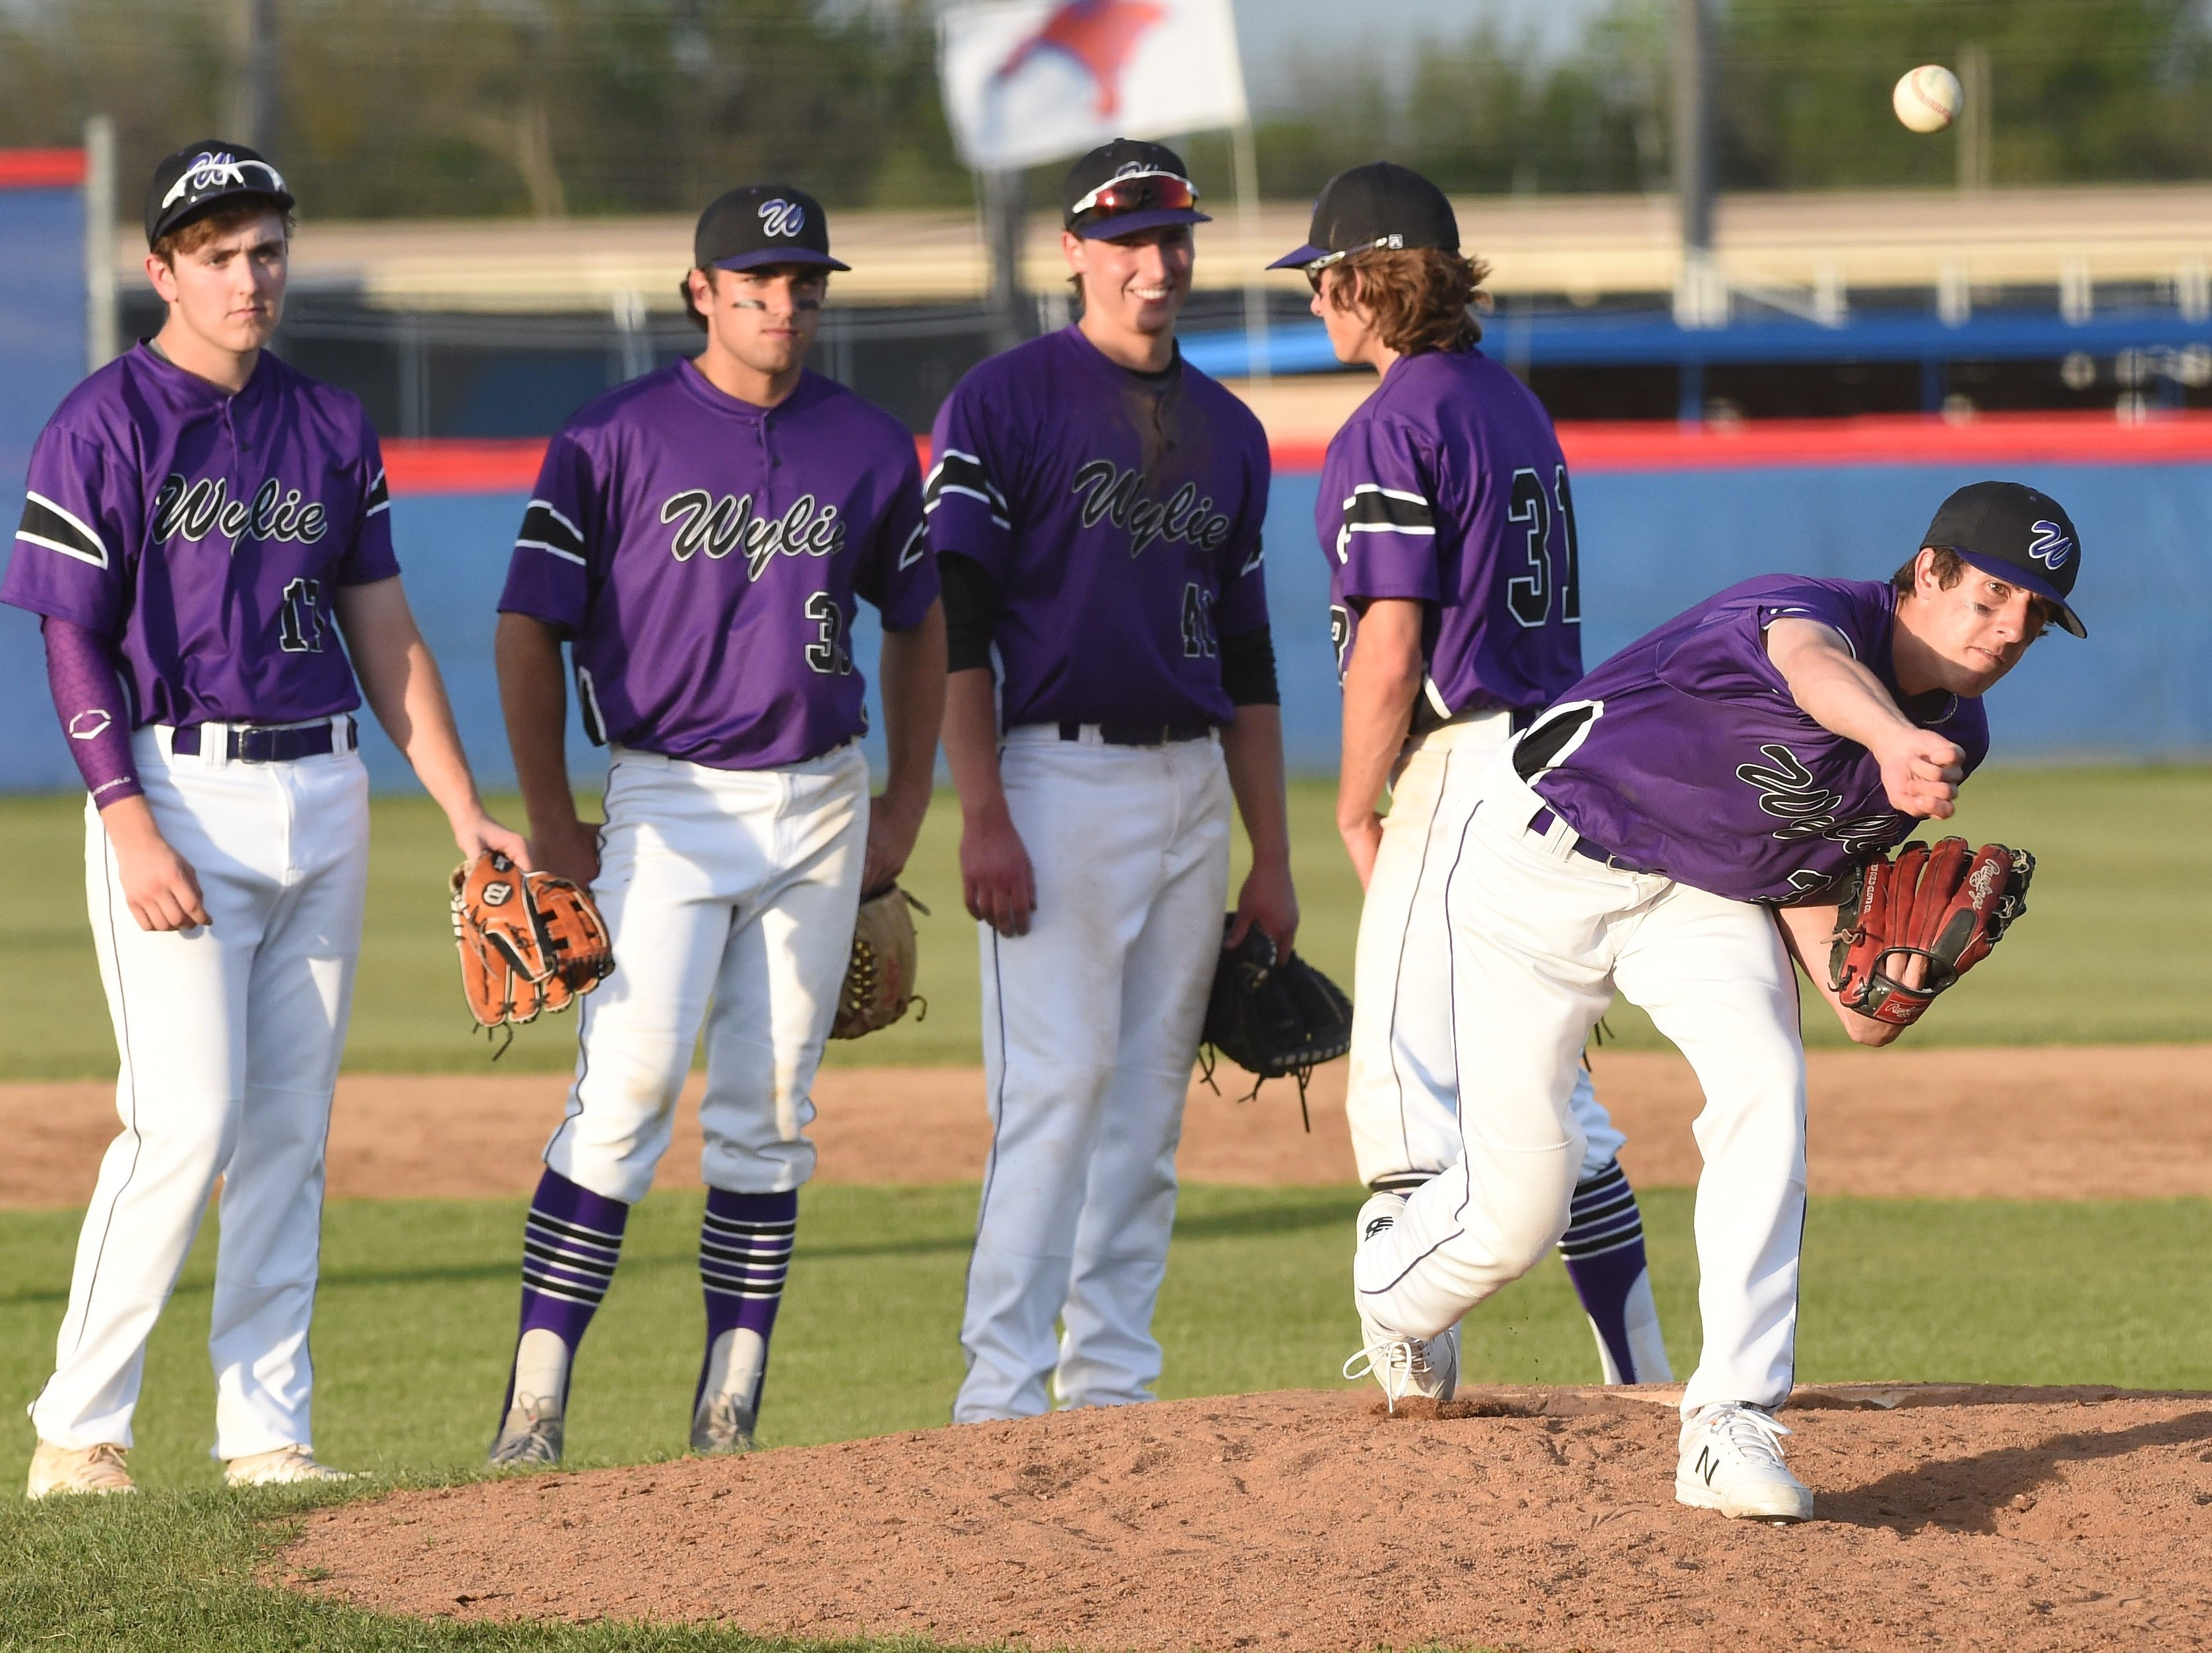 Wylie reliever Cooper Hrbacek (37) warms up with the rest of the infield behind him at Cougar Field on Tuesday, April 9, 2019. The Bulldogs beat Cooper 11-5.